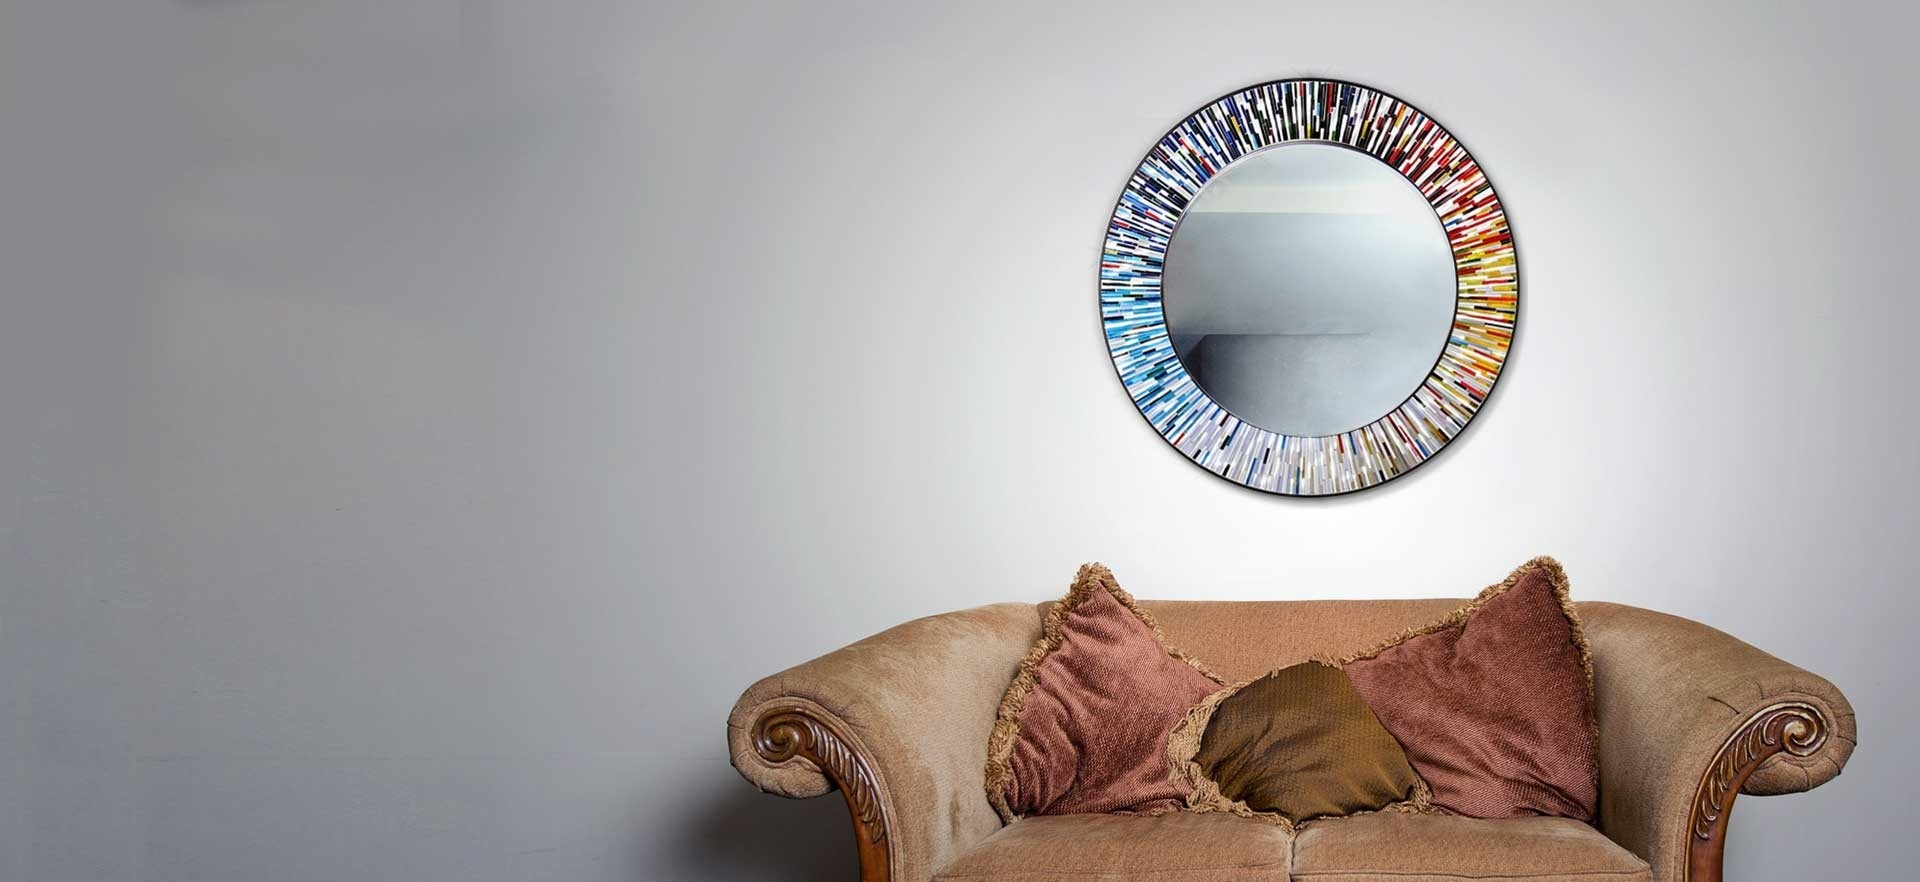 Handmade Mirrors Luxury Designer Unusual And Modern Piaggi Pertaining To Unusual Mirrors (Image 8 of 15)